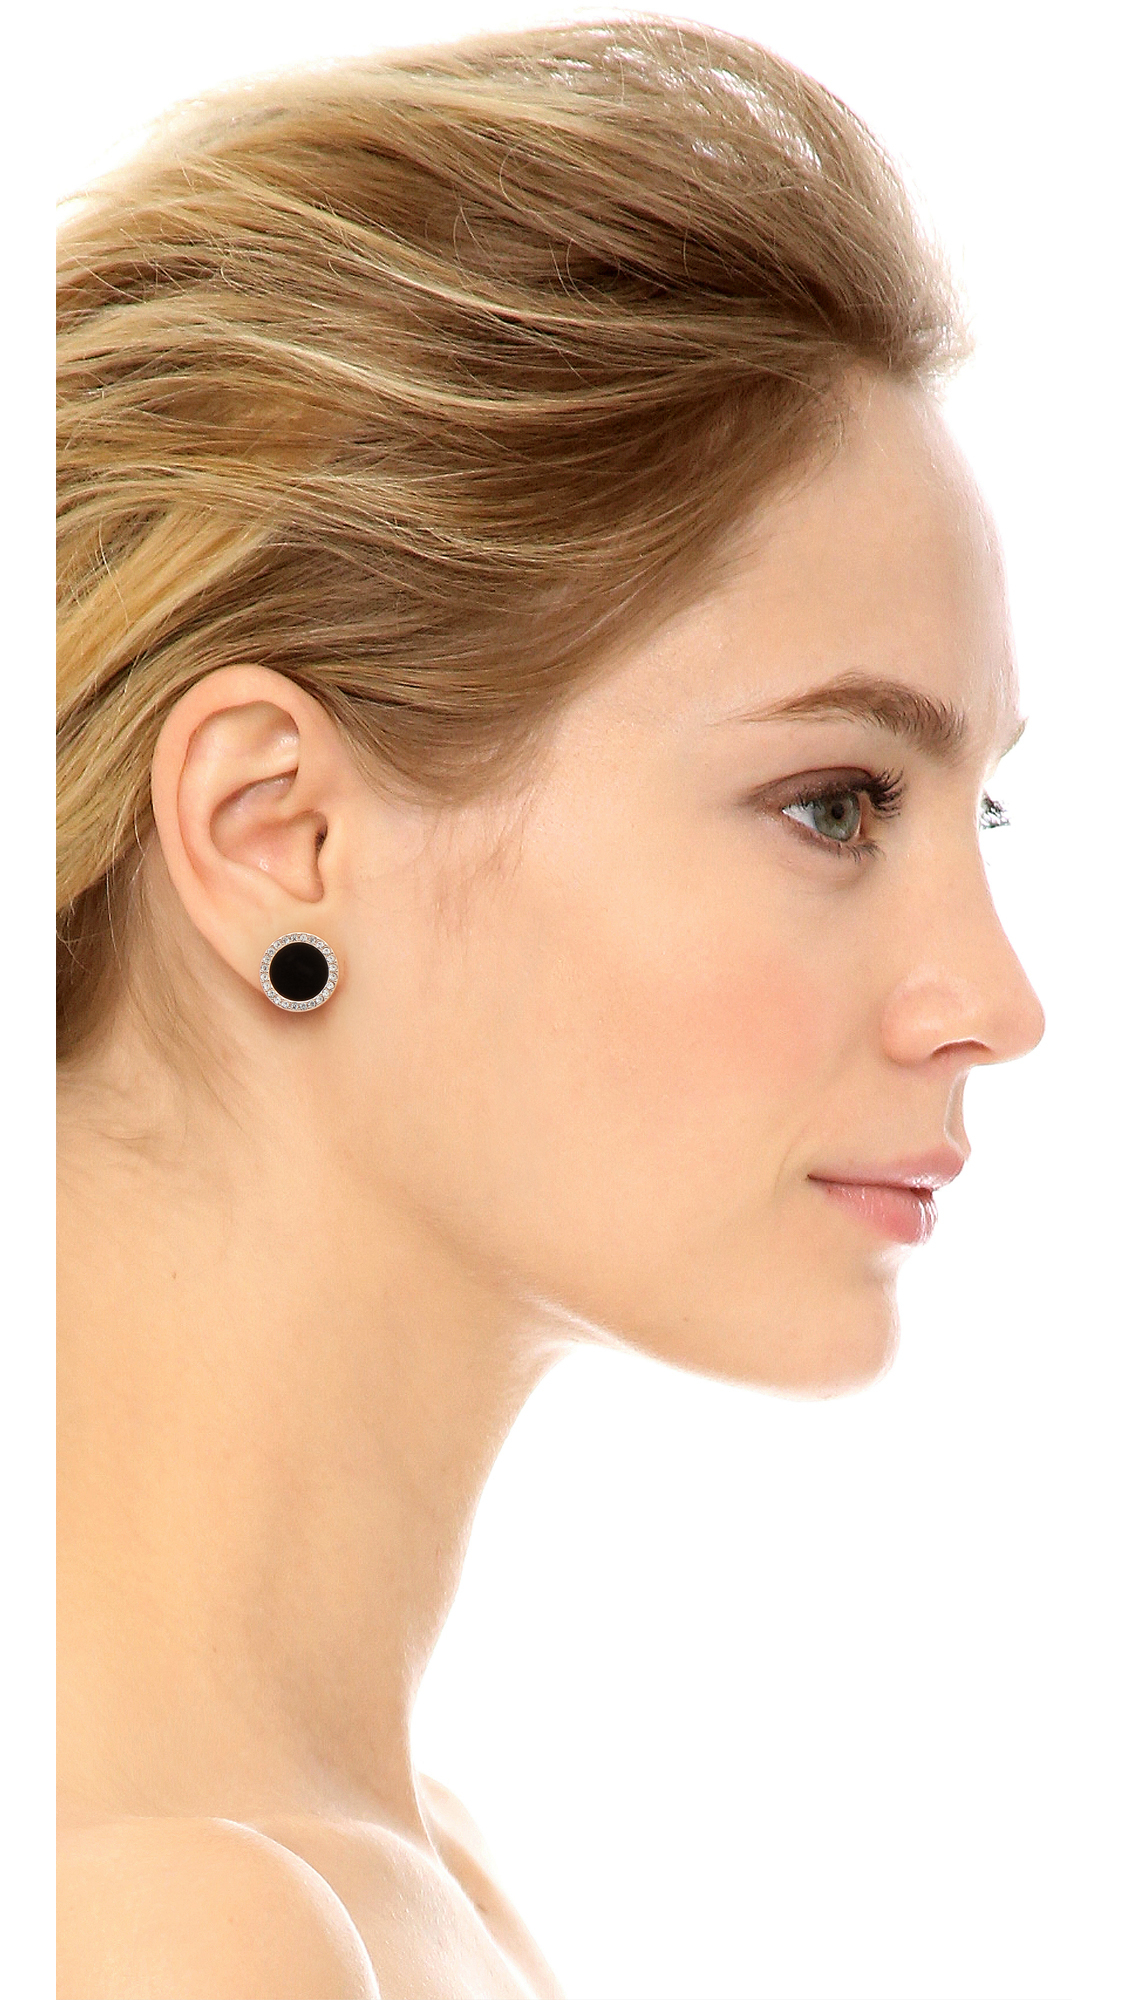 earrings earring lobe drooping about your are on all stud ear the pavement droop toward pointing